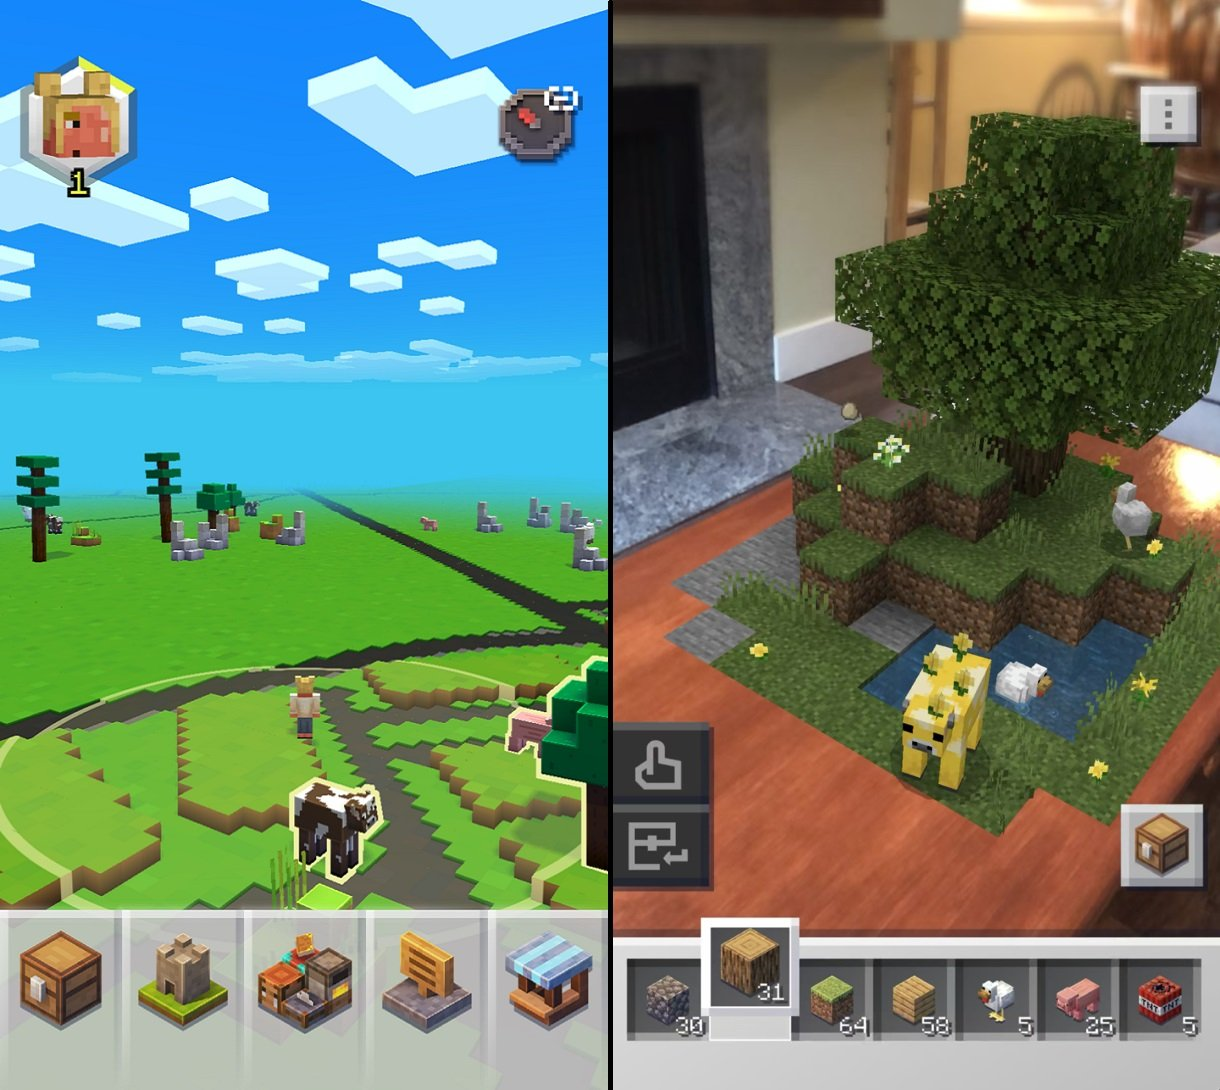 Minecraft Earth's core gameplay seems to blend aspects of Pokemon GO world play and original Minecraft building with AR technology.